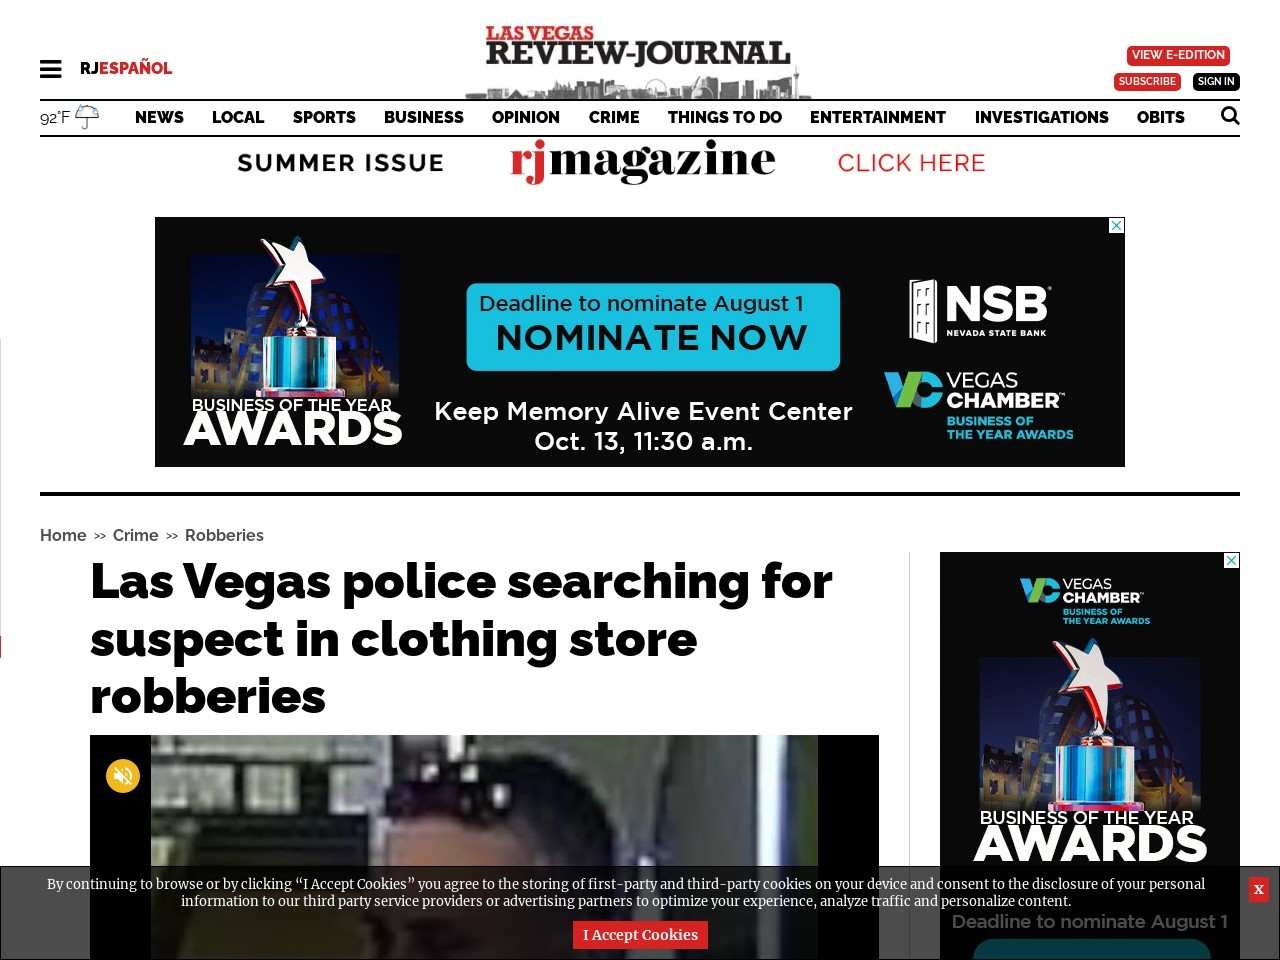 Las Vegas police searching for suspect in clothing store robberies